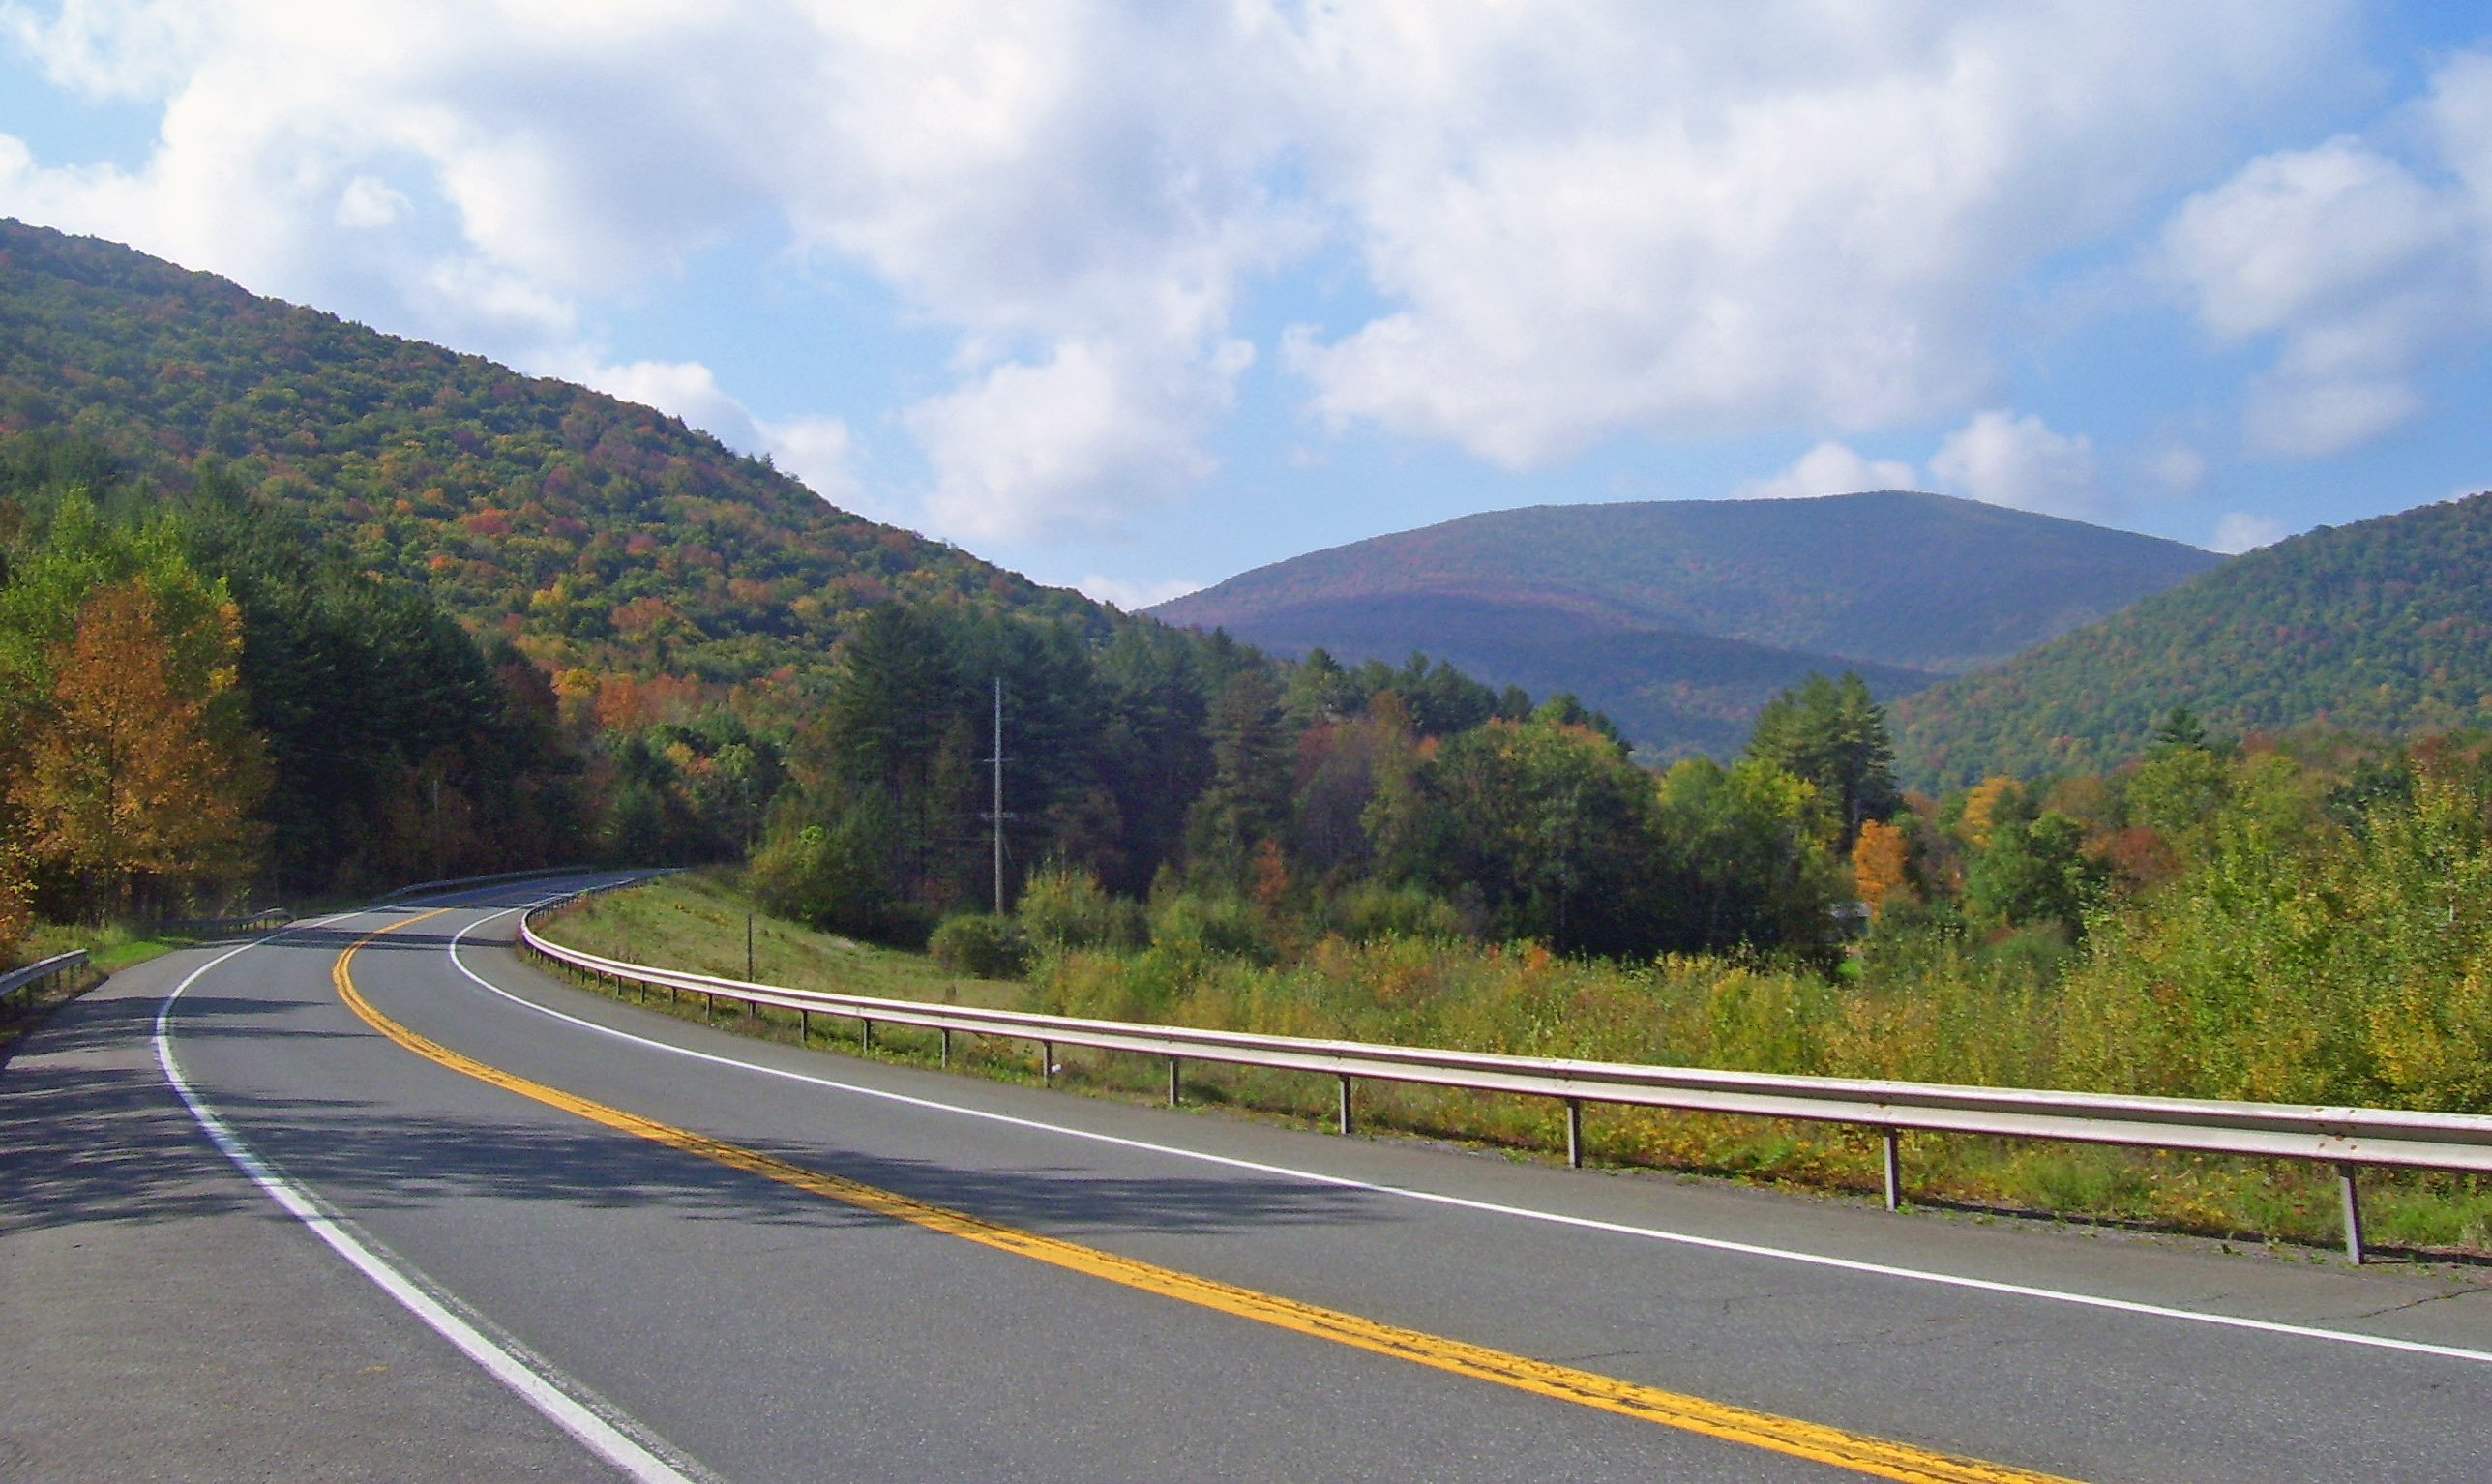 Balsam_Mountain_and_NY_28